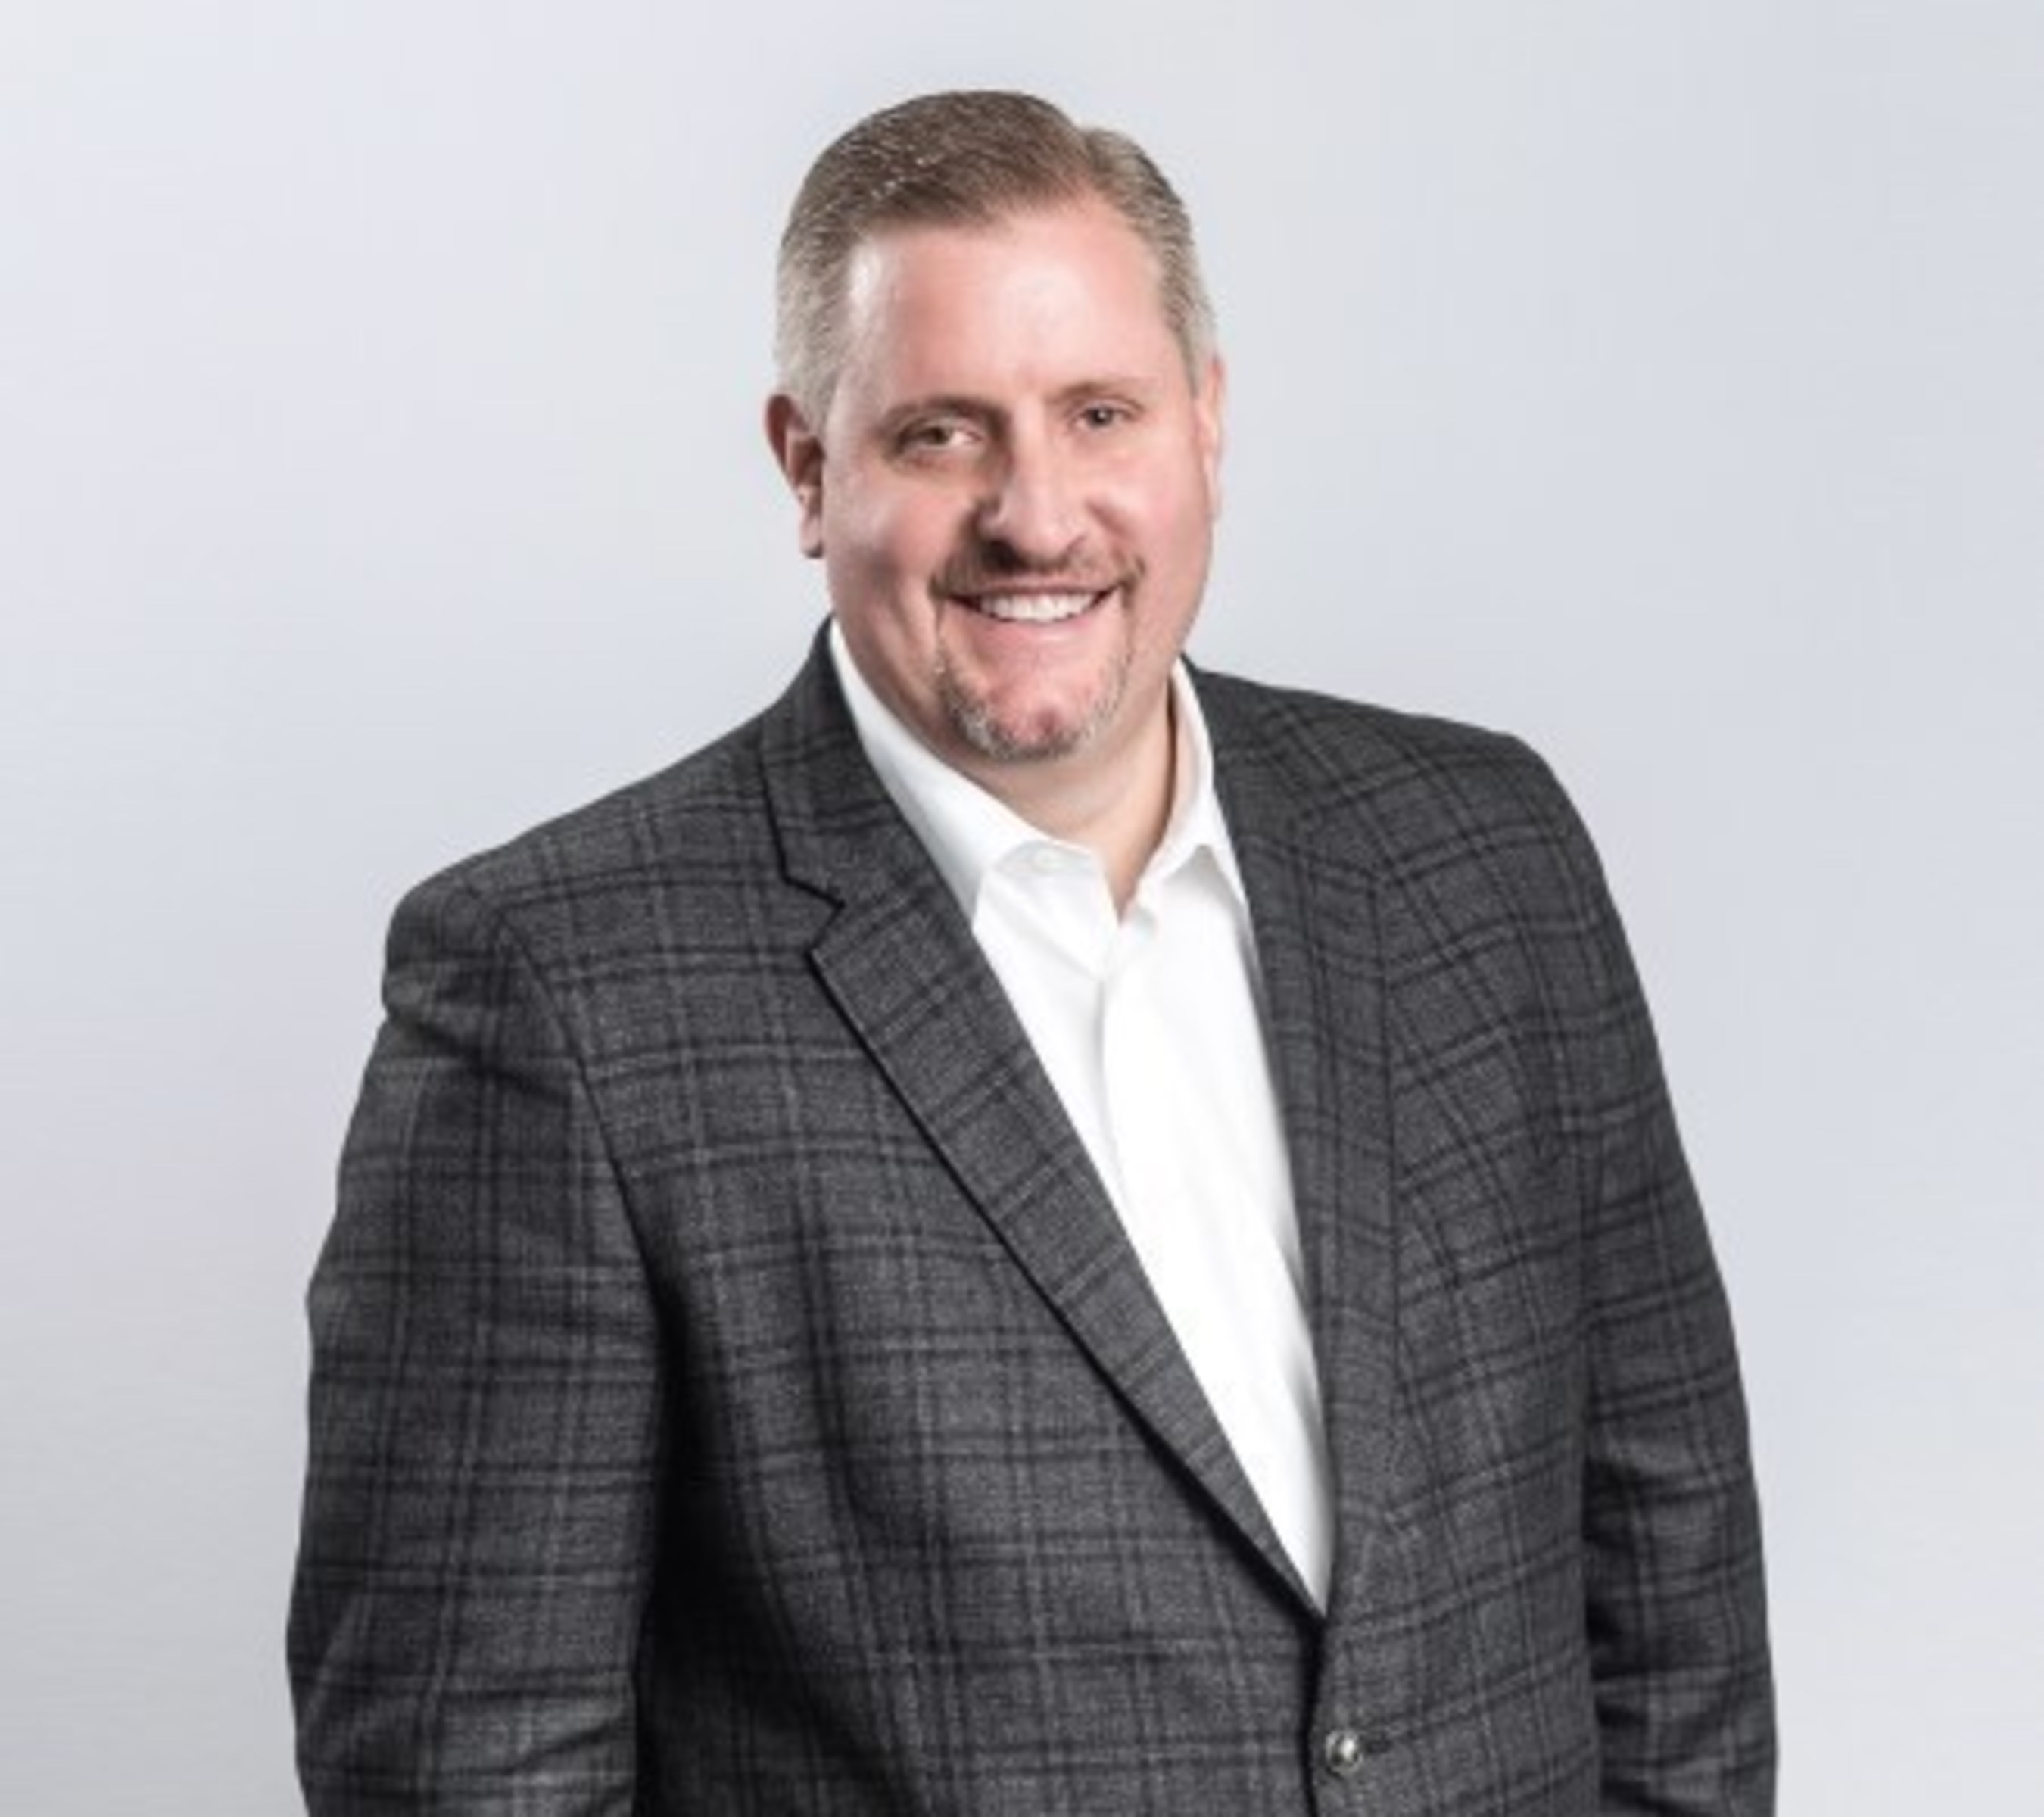 USA GROUPS Appoints Lance Craft to Executive Leadership Position